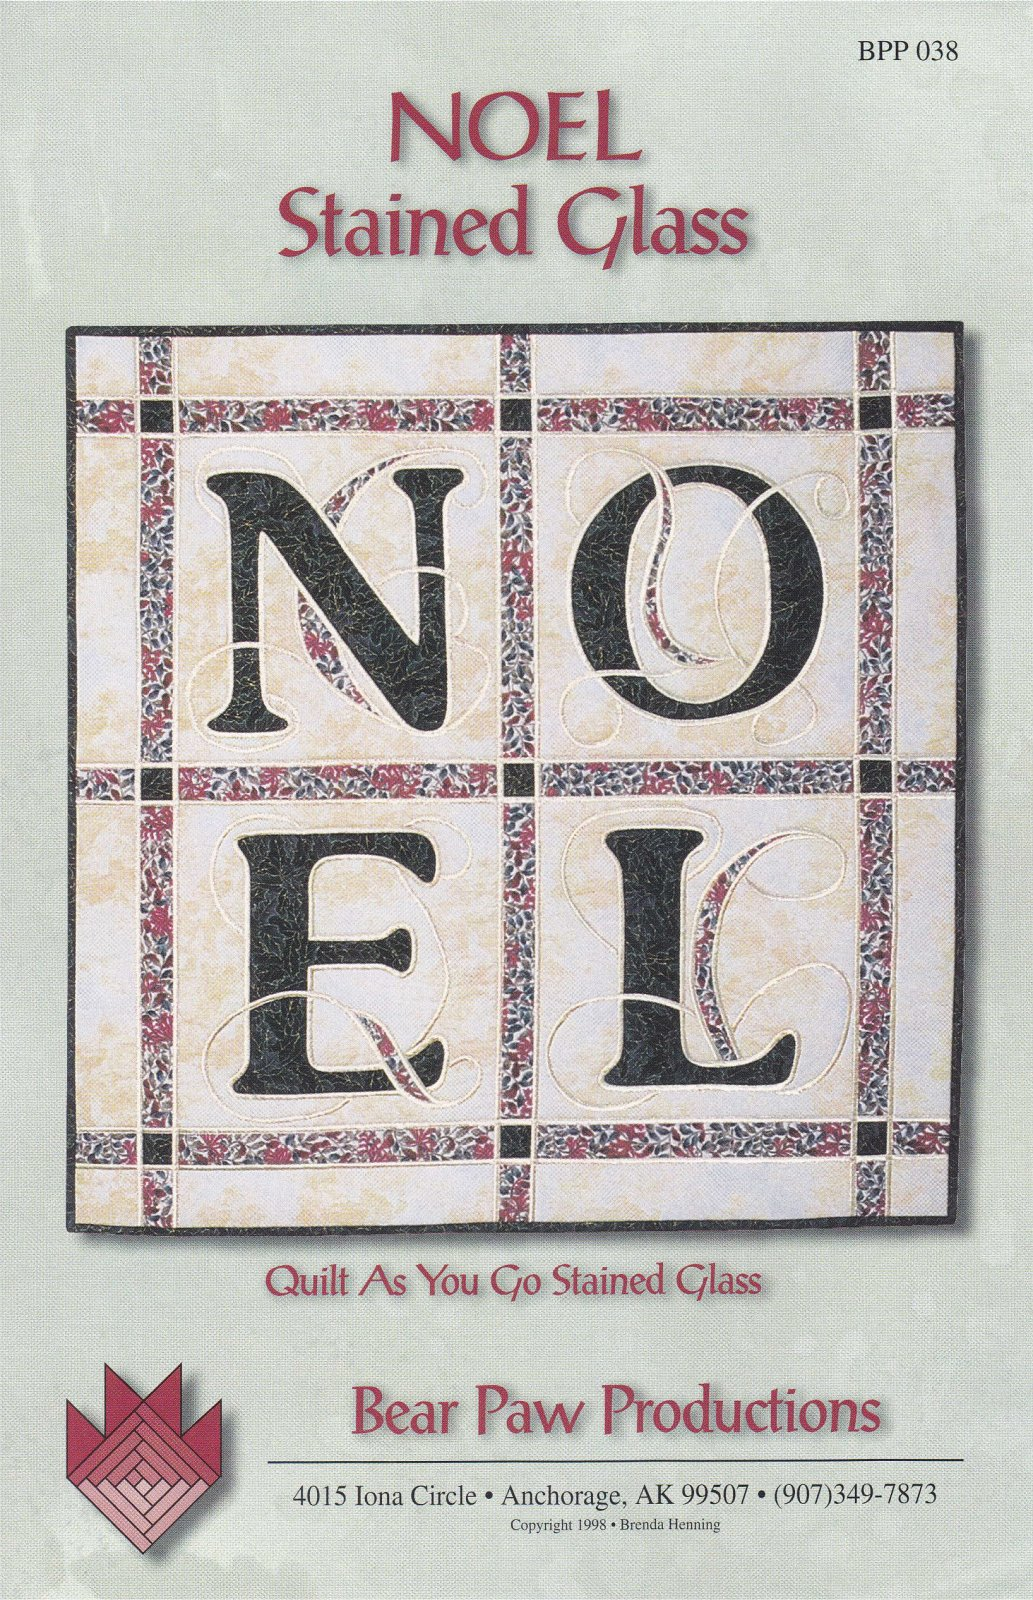 NOEL Stained Glass